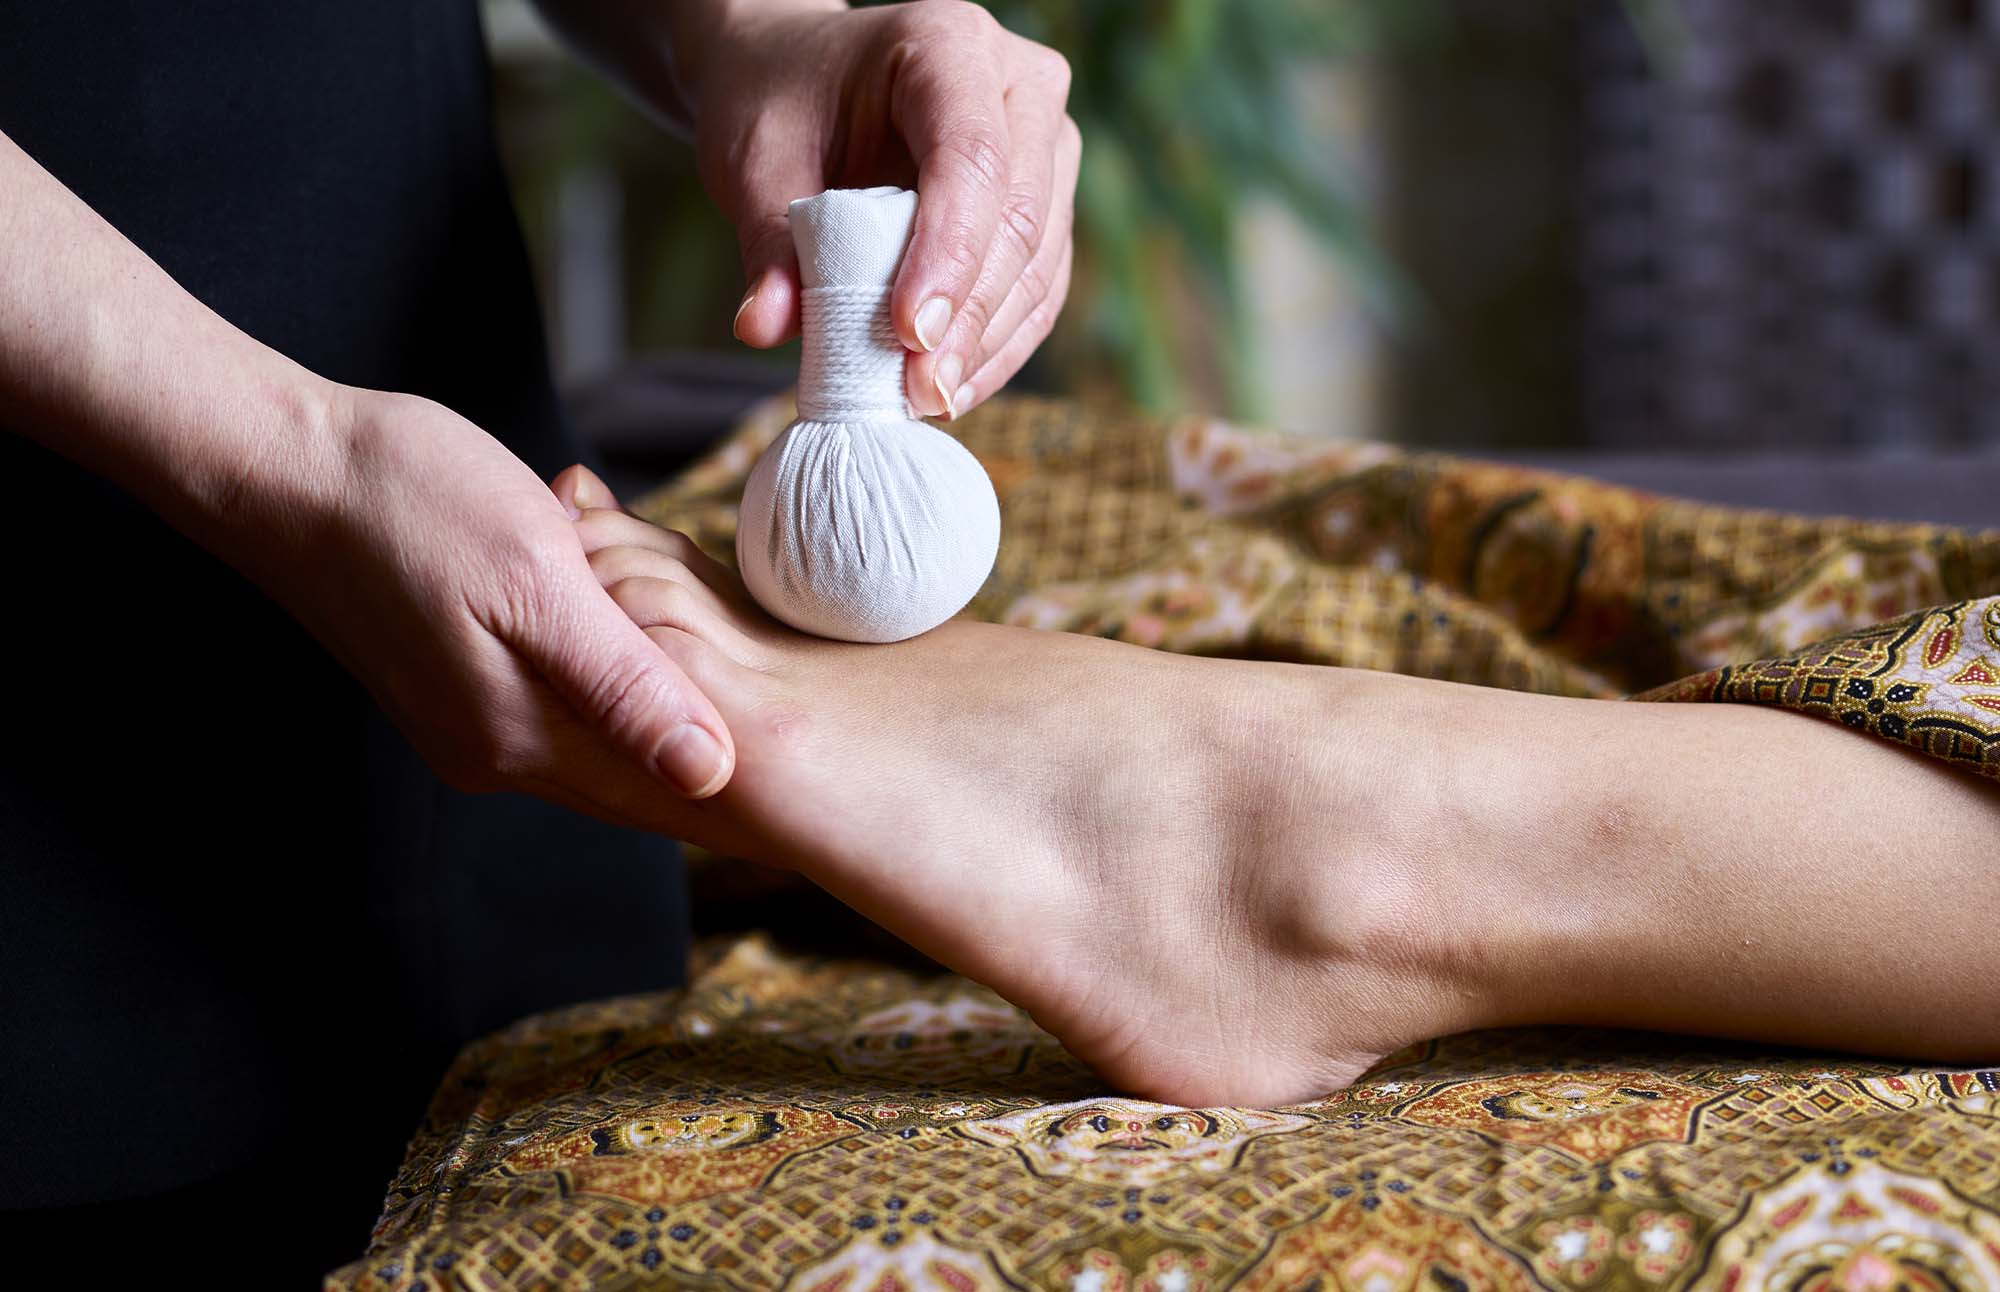 The therapist is using a Thai poultice to massage a woman's foot